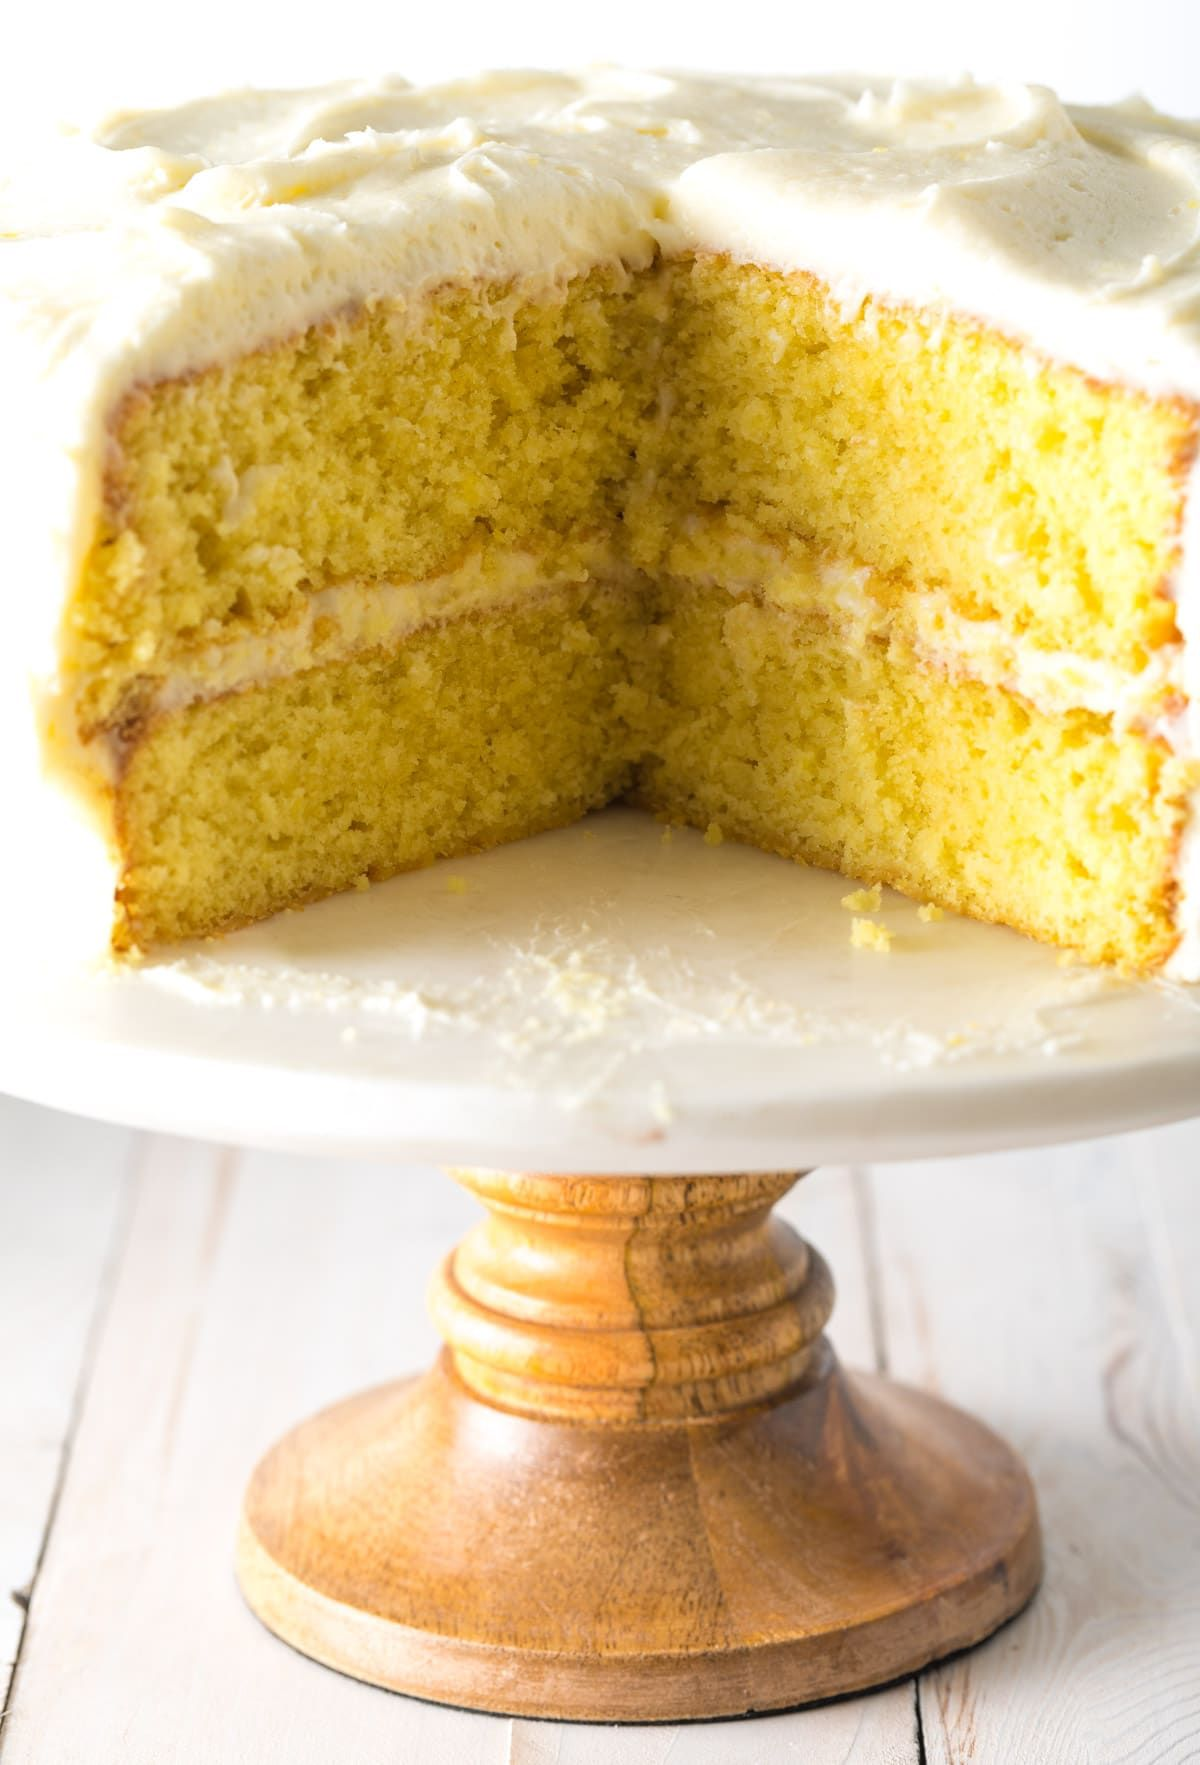 Our Best Lemon Buttermilk Cake Recipe Aspicyperspective Lemon Cake Easter Buttermilk Cake Recipe Lemon Buttermilk Cake Recipe Lemon Cake Recipe